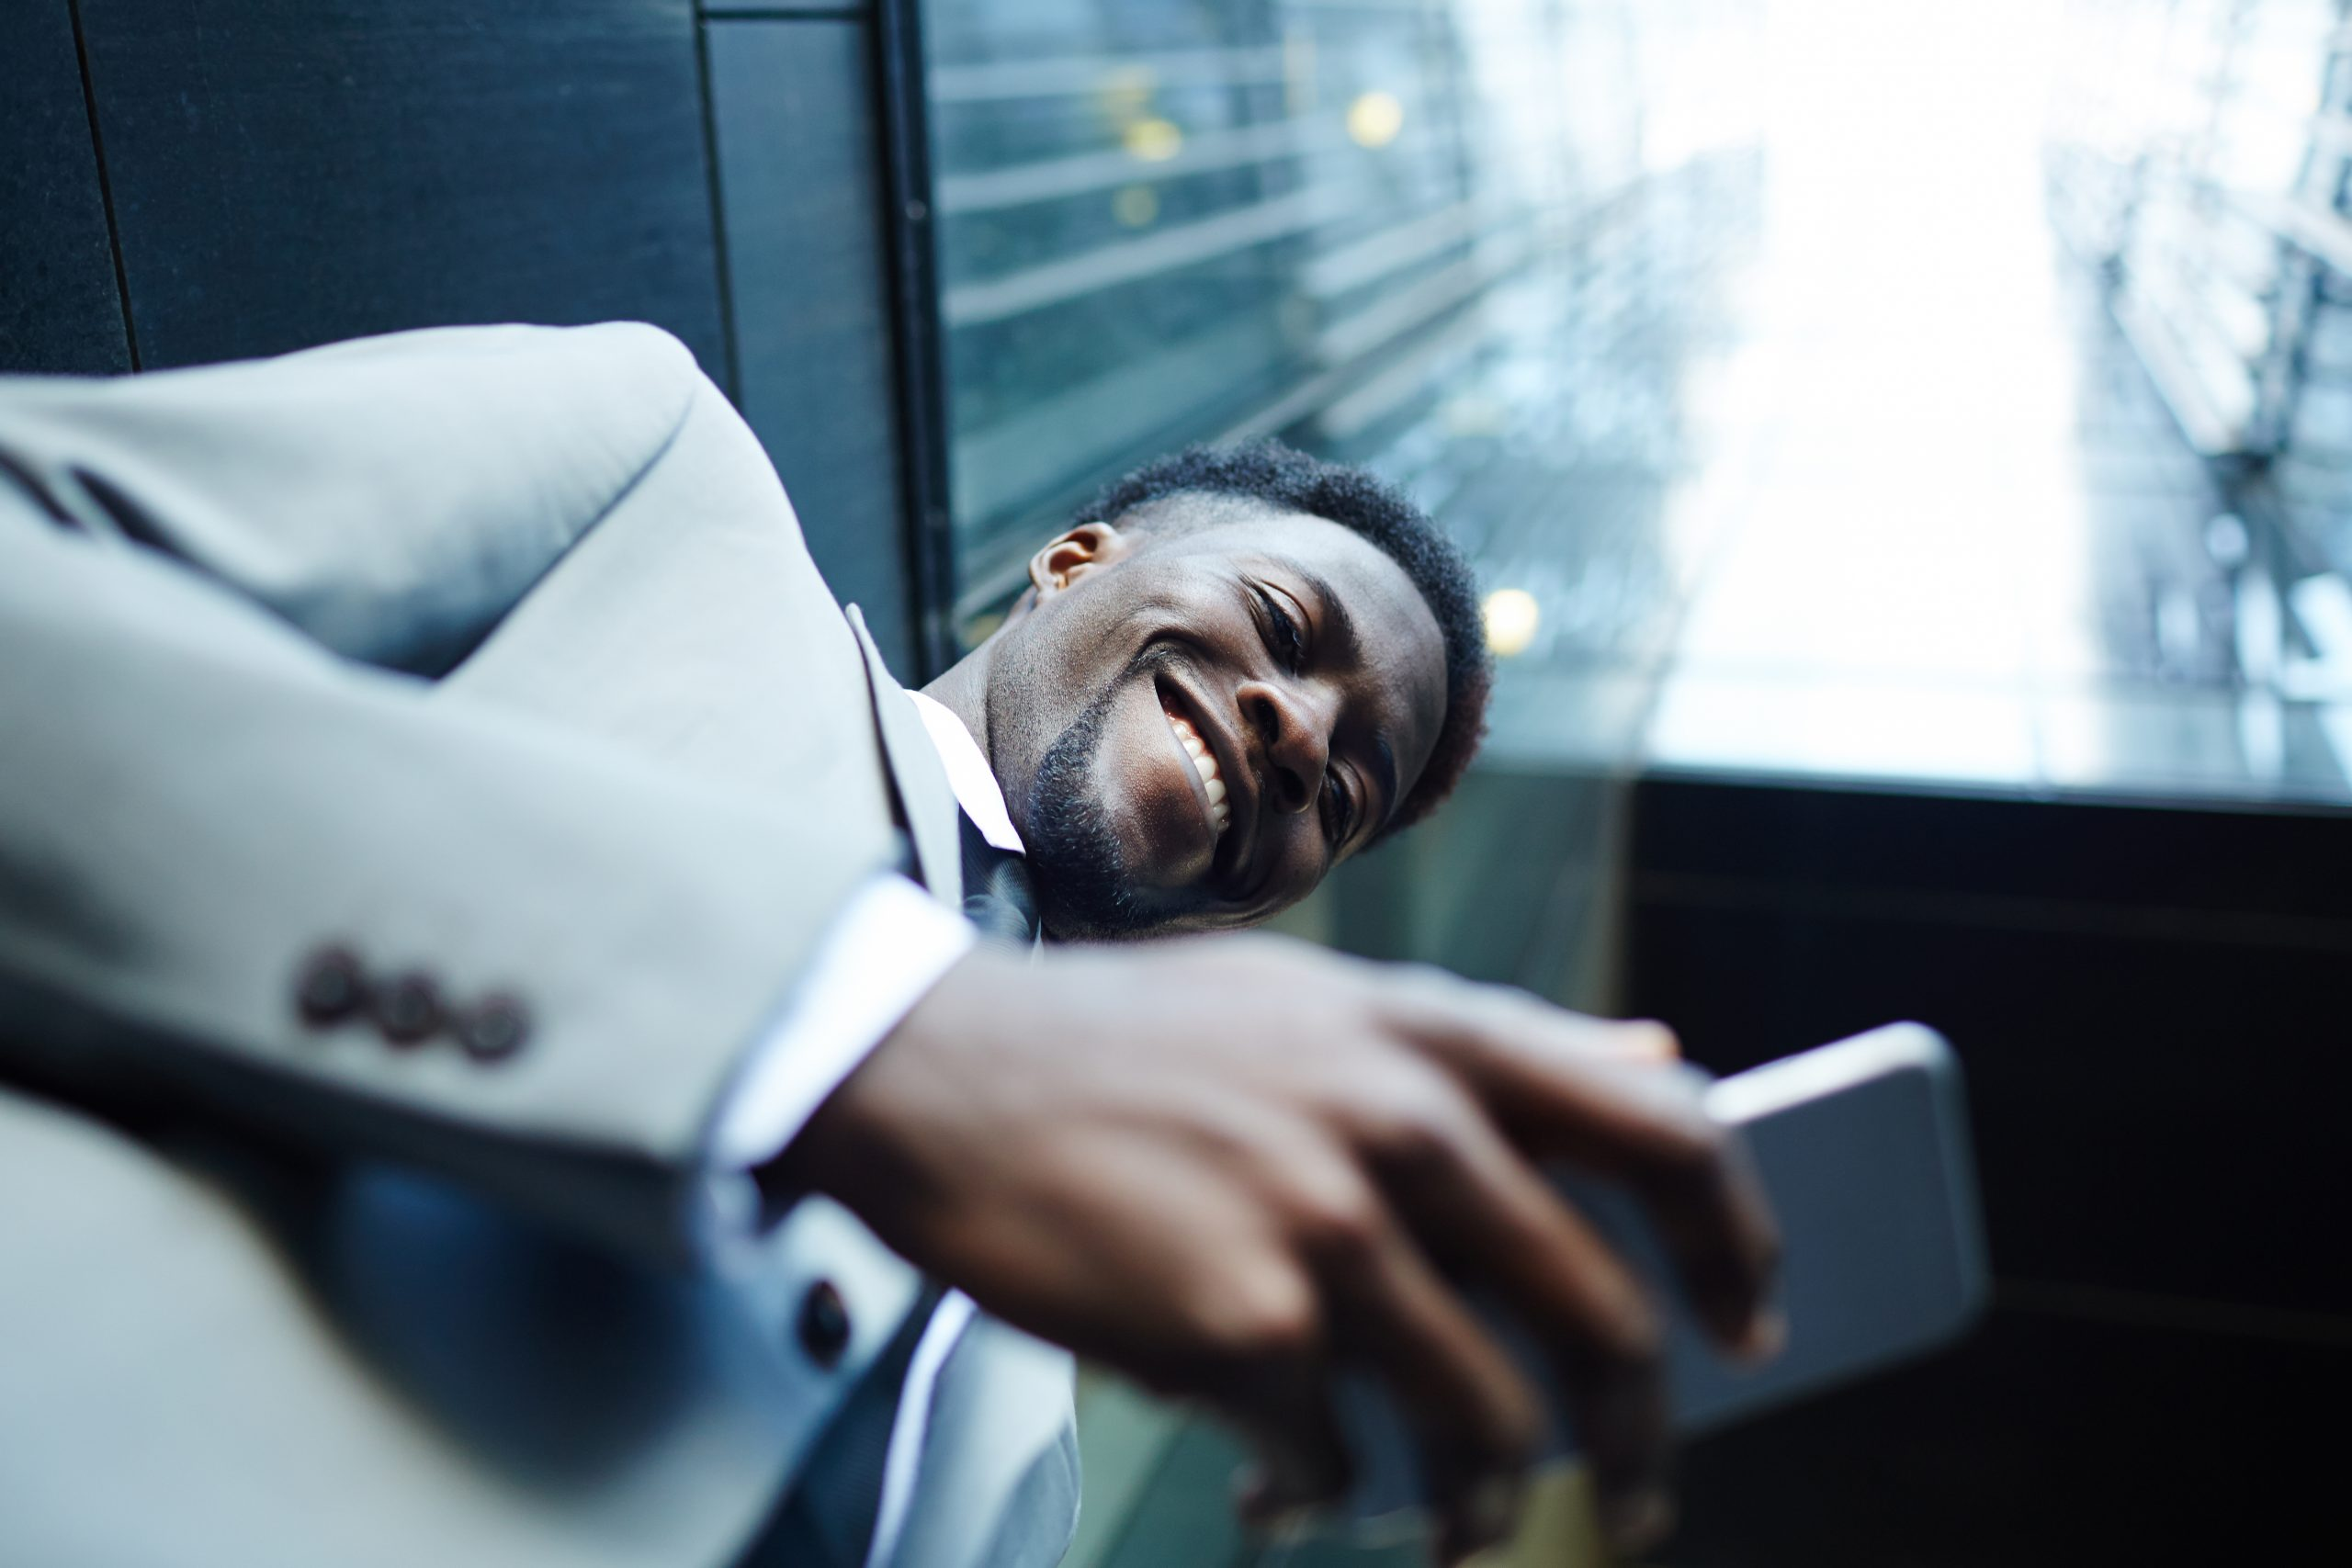 Businessman with mobile gadget texting in urban environment